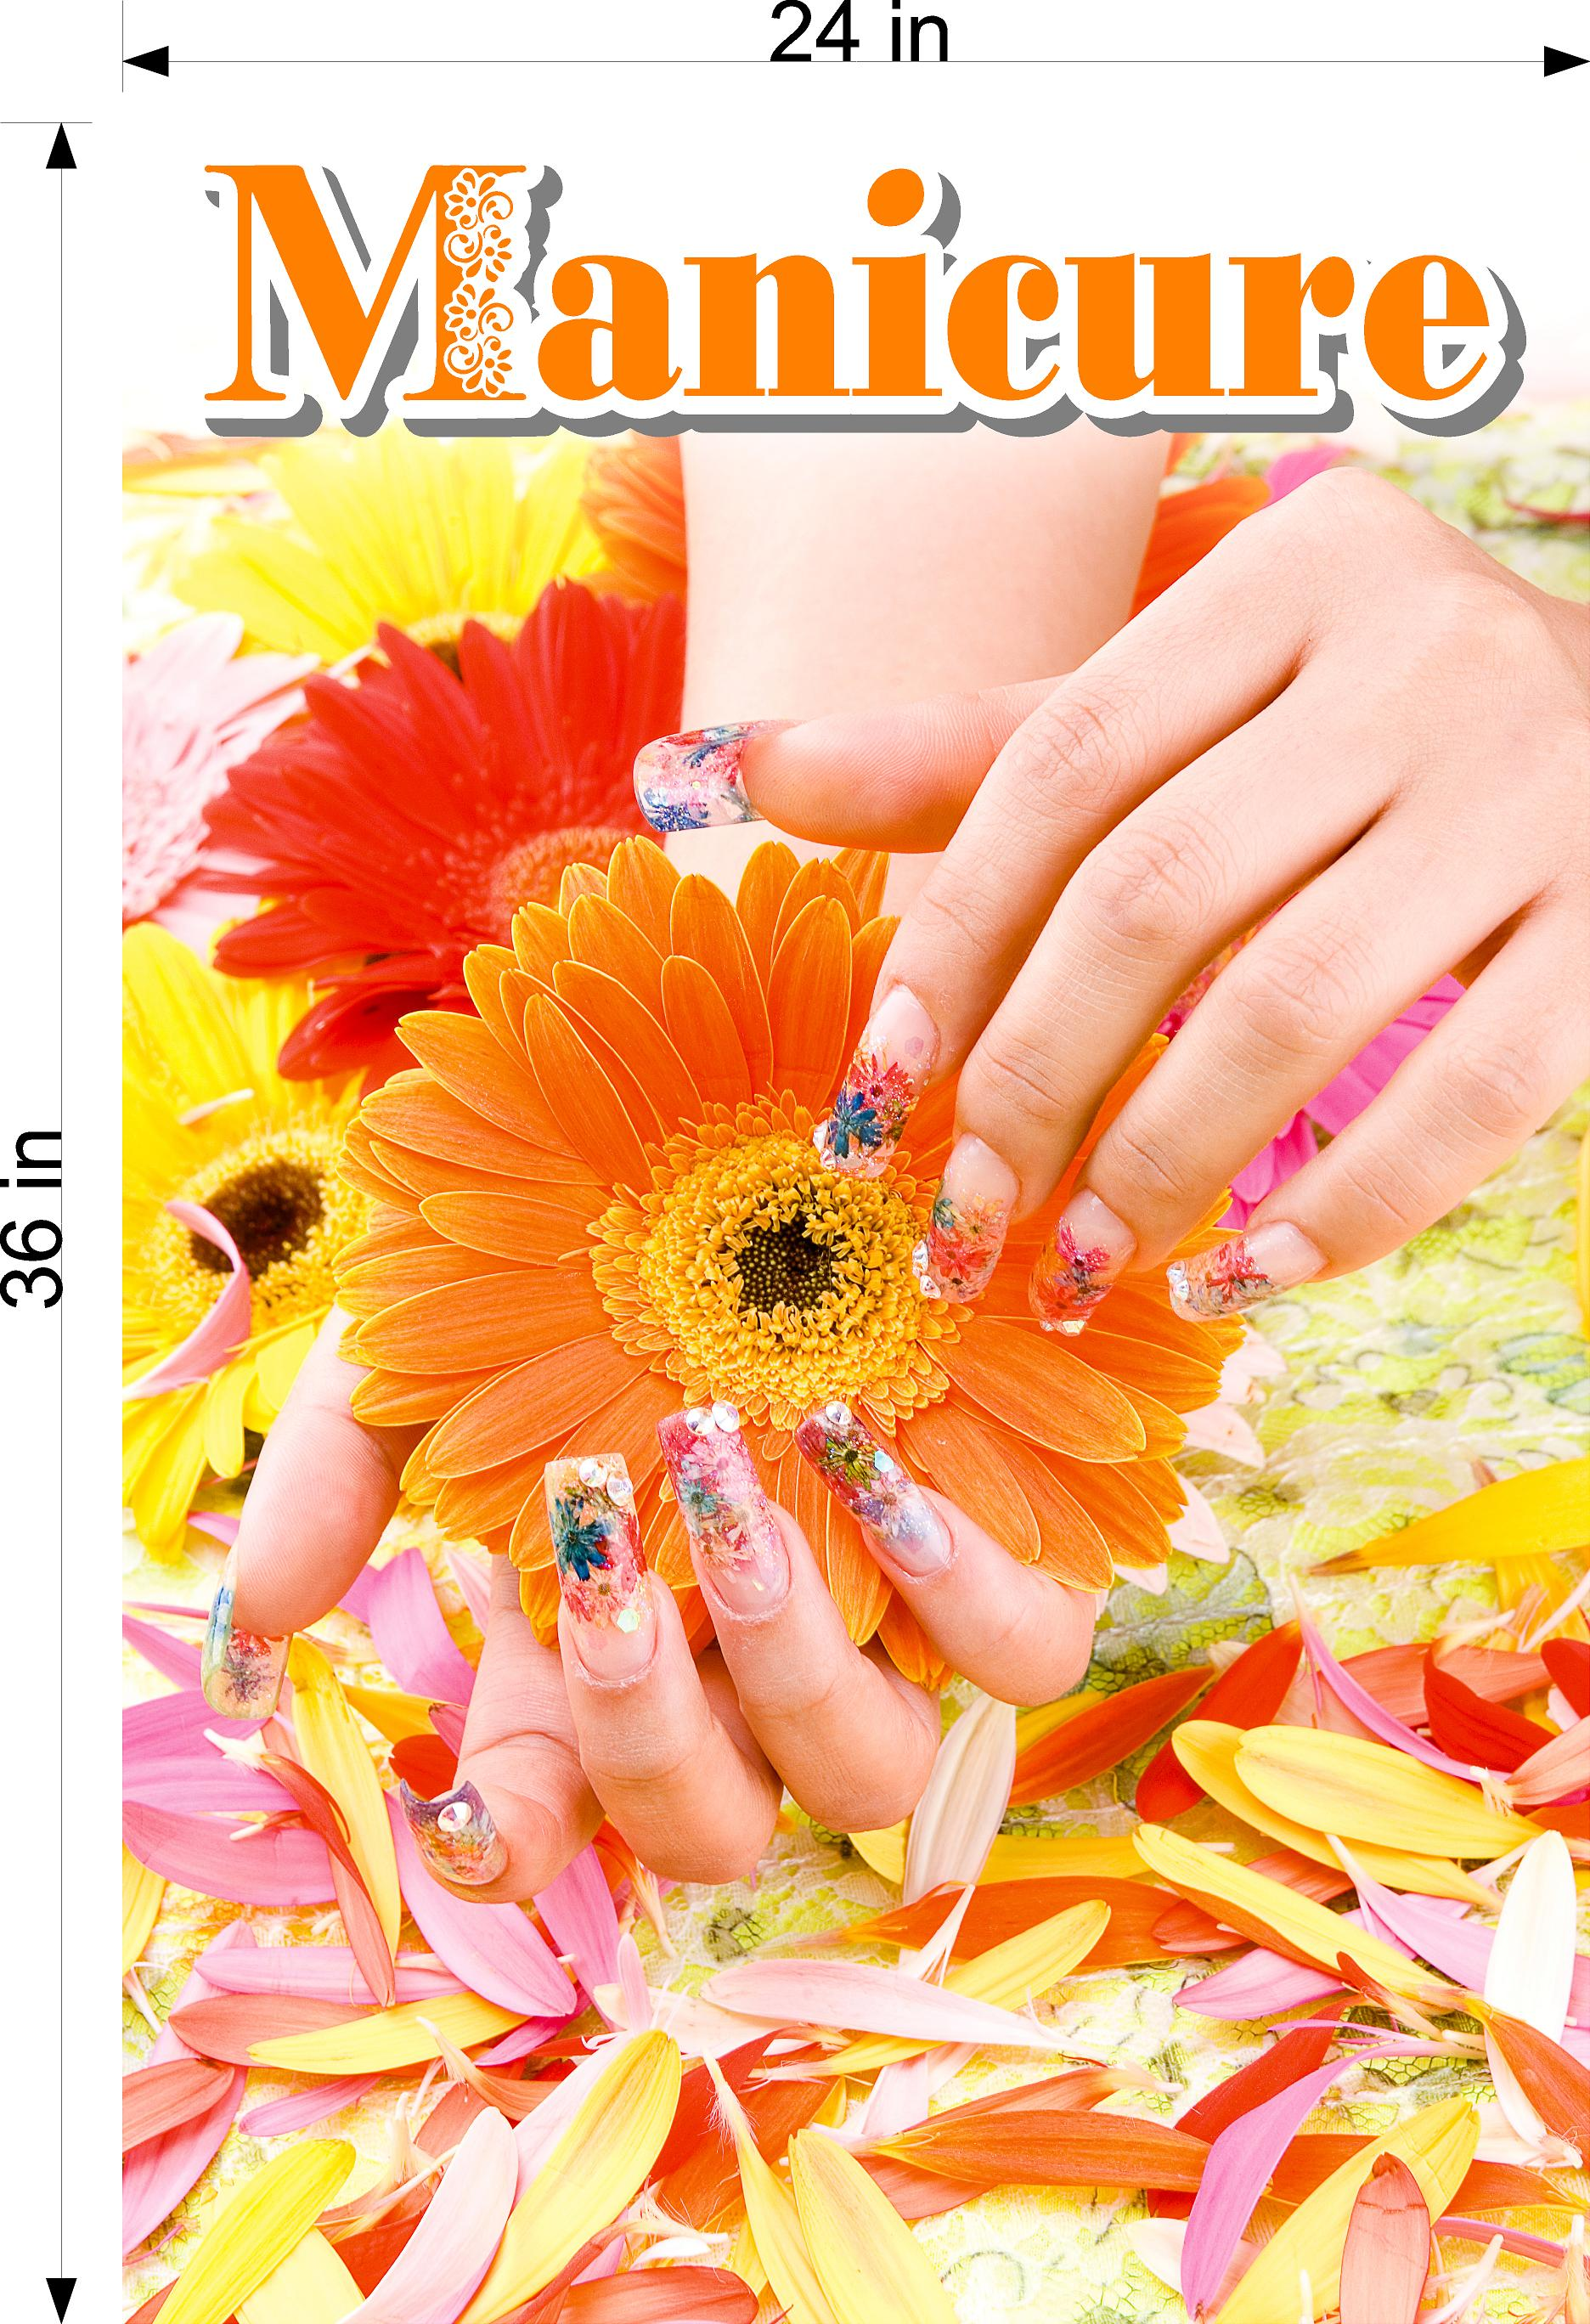 Manicure 12 Photo-Realistic Paper Poster Premium Matte Interior Inside Sign Advertising Marketing Wall Window Non-Laminated Vertical